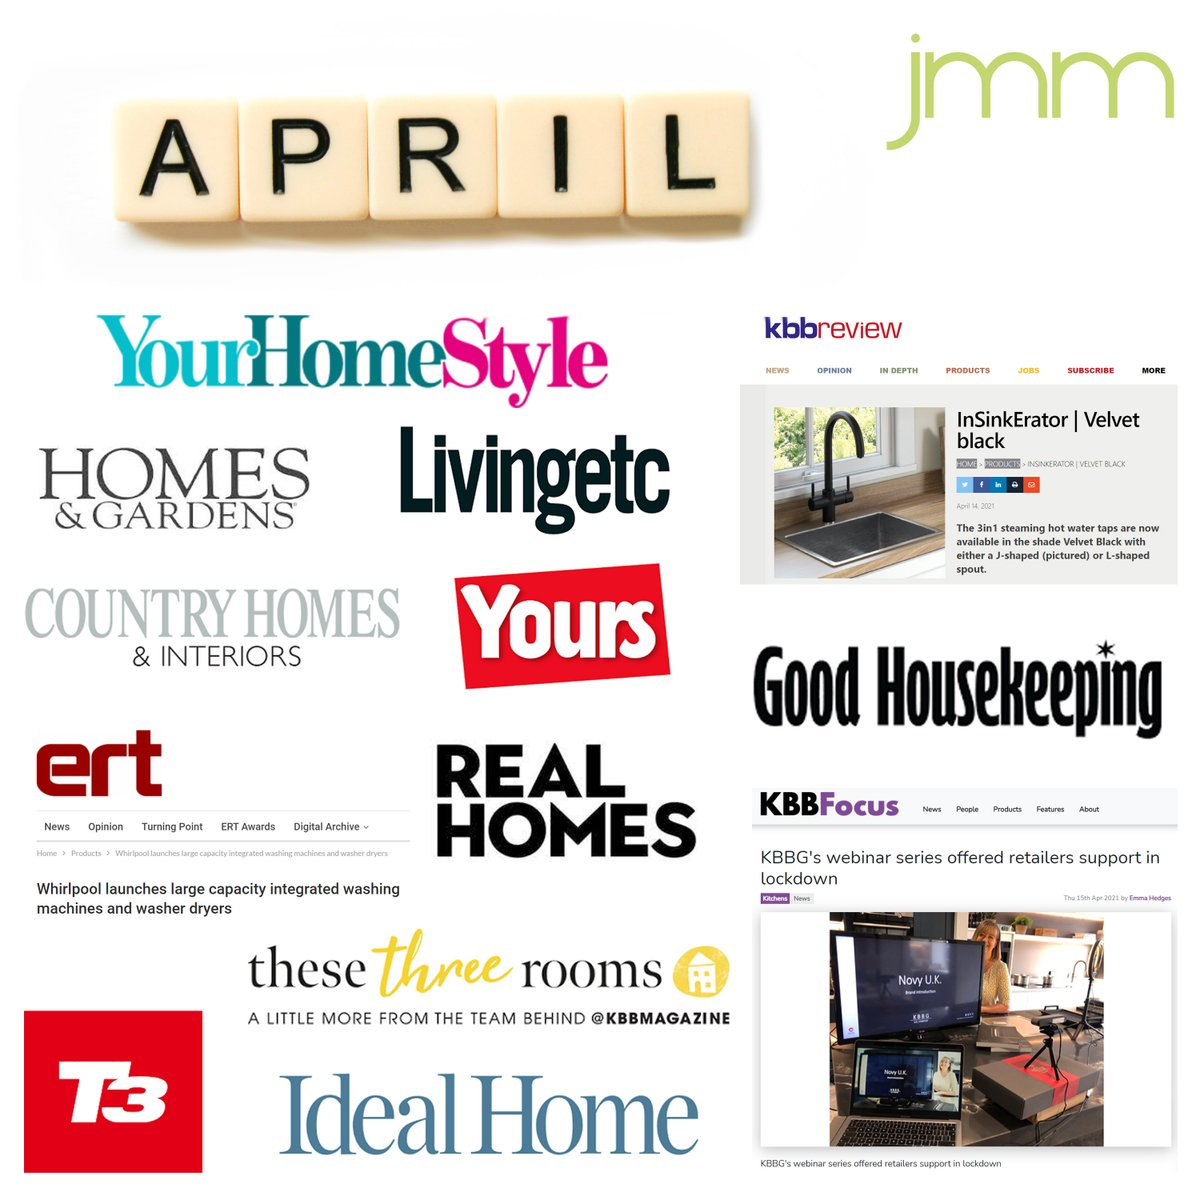 test Twitter Media - April was a busy month! We secured some great coverage for our clients.  Are you looking to increase your brand awareness through PR, Social Media or Influencer Marketing?  Get in touch to find out how we can help😀 contact@jmmpr.co.uk  #pragency #socialmedia #influencermarketing https://t.co/WZfk43zCri